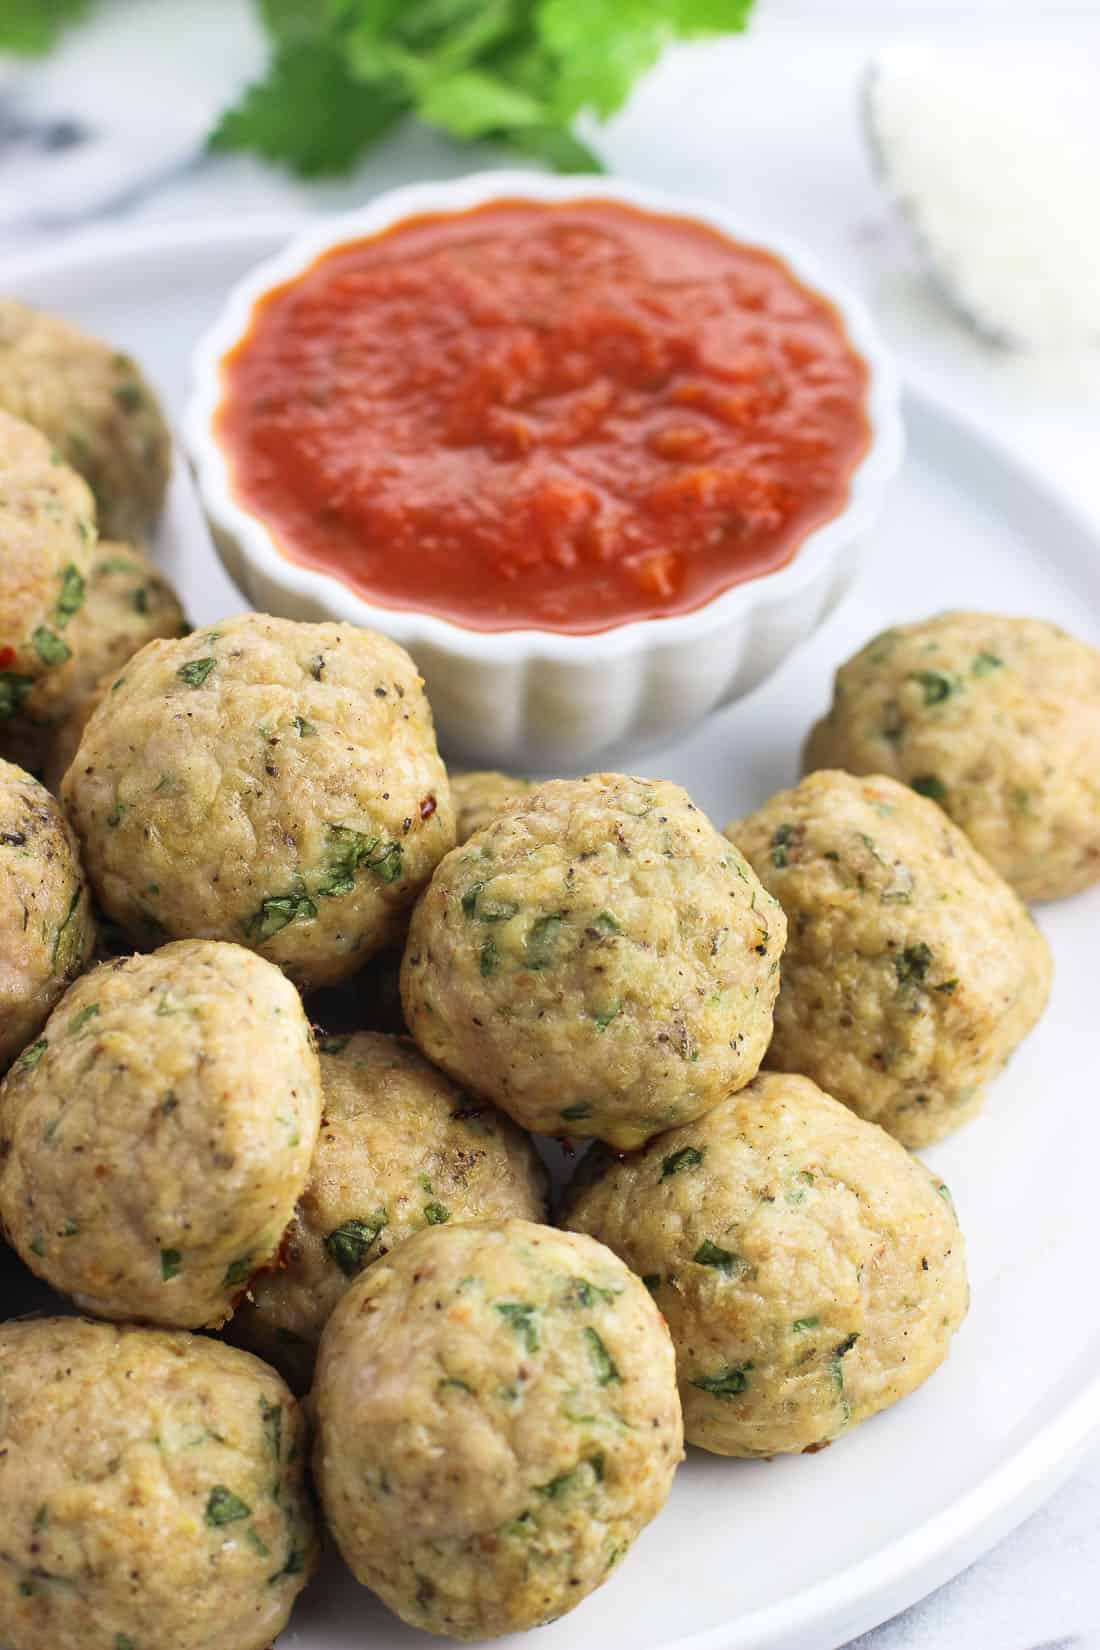 Italian baked turkey meatballs are juicy and healthy, made with lean ground turkey and baked instead of fried. This easy turkey meatball recipe is great on pasta, in meatball subs, and makes a great appetizer when served alongside marinara sauce.